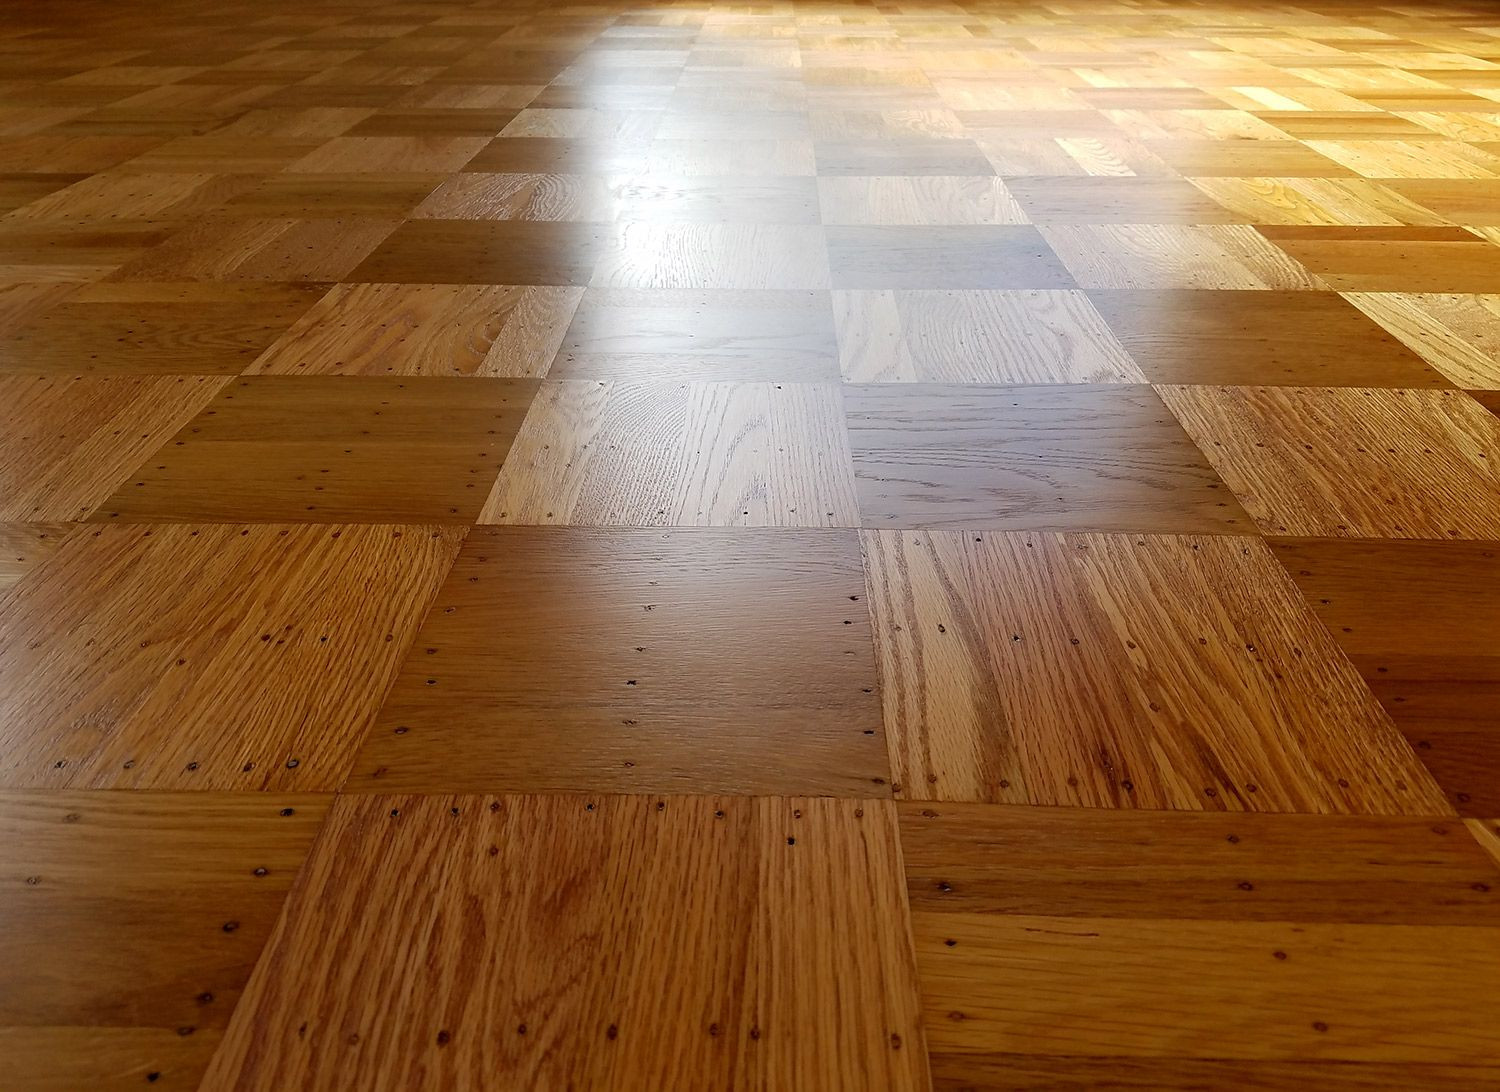 how to restore hardwood floors without refinishing of refinishing oak parquet floors refinish pinterest room within refinishing oak parquet floors